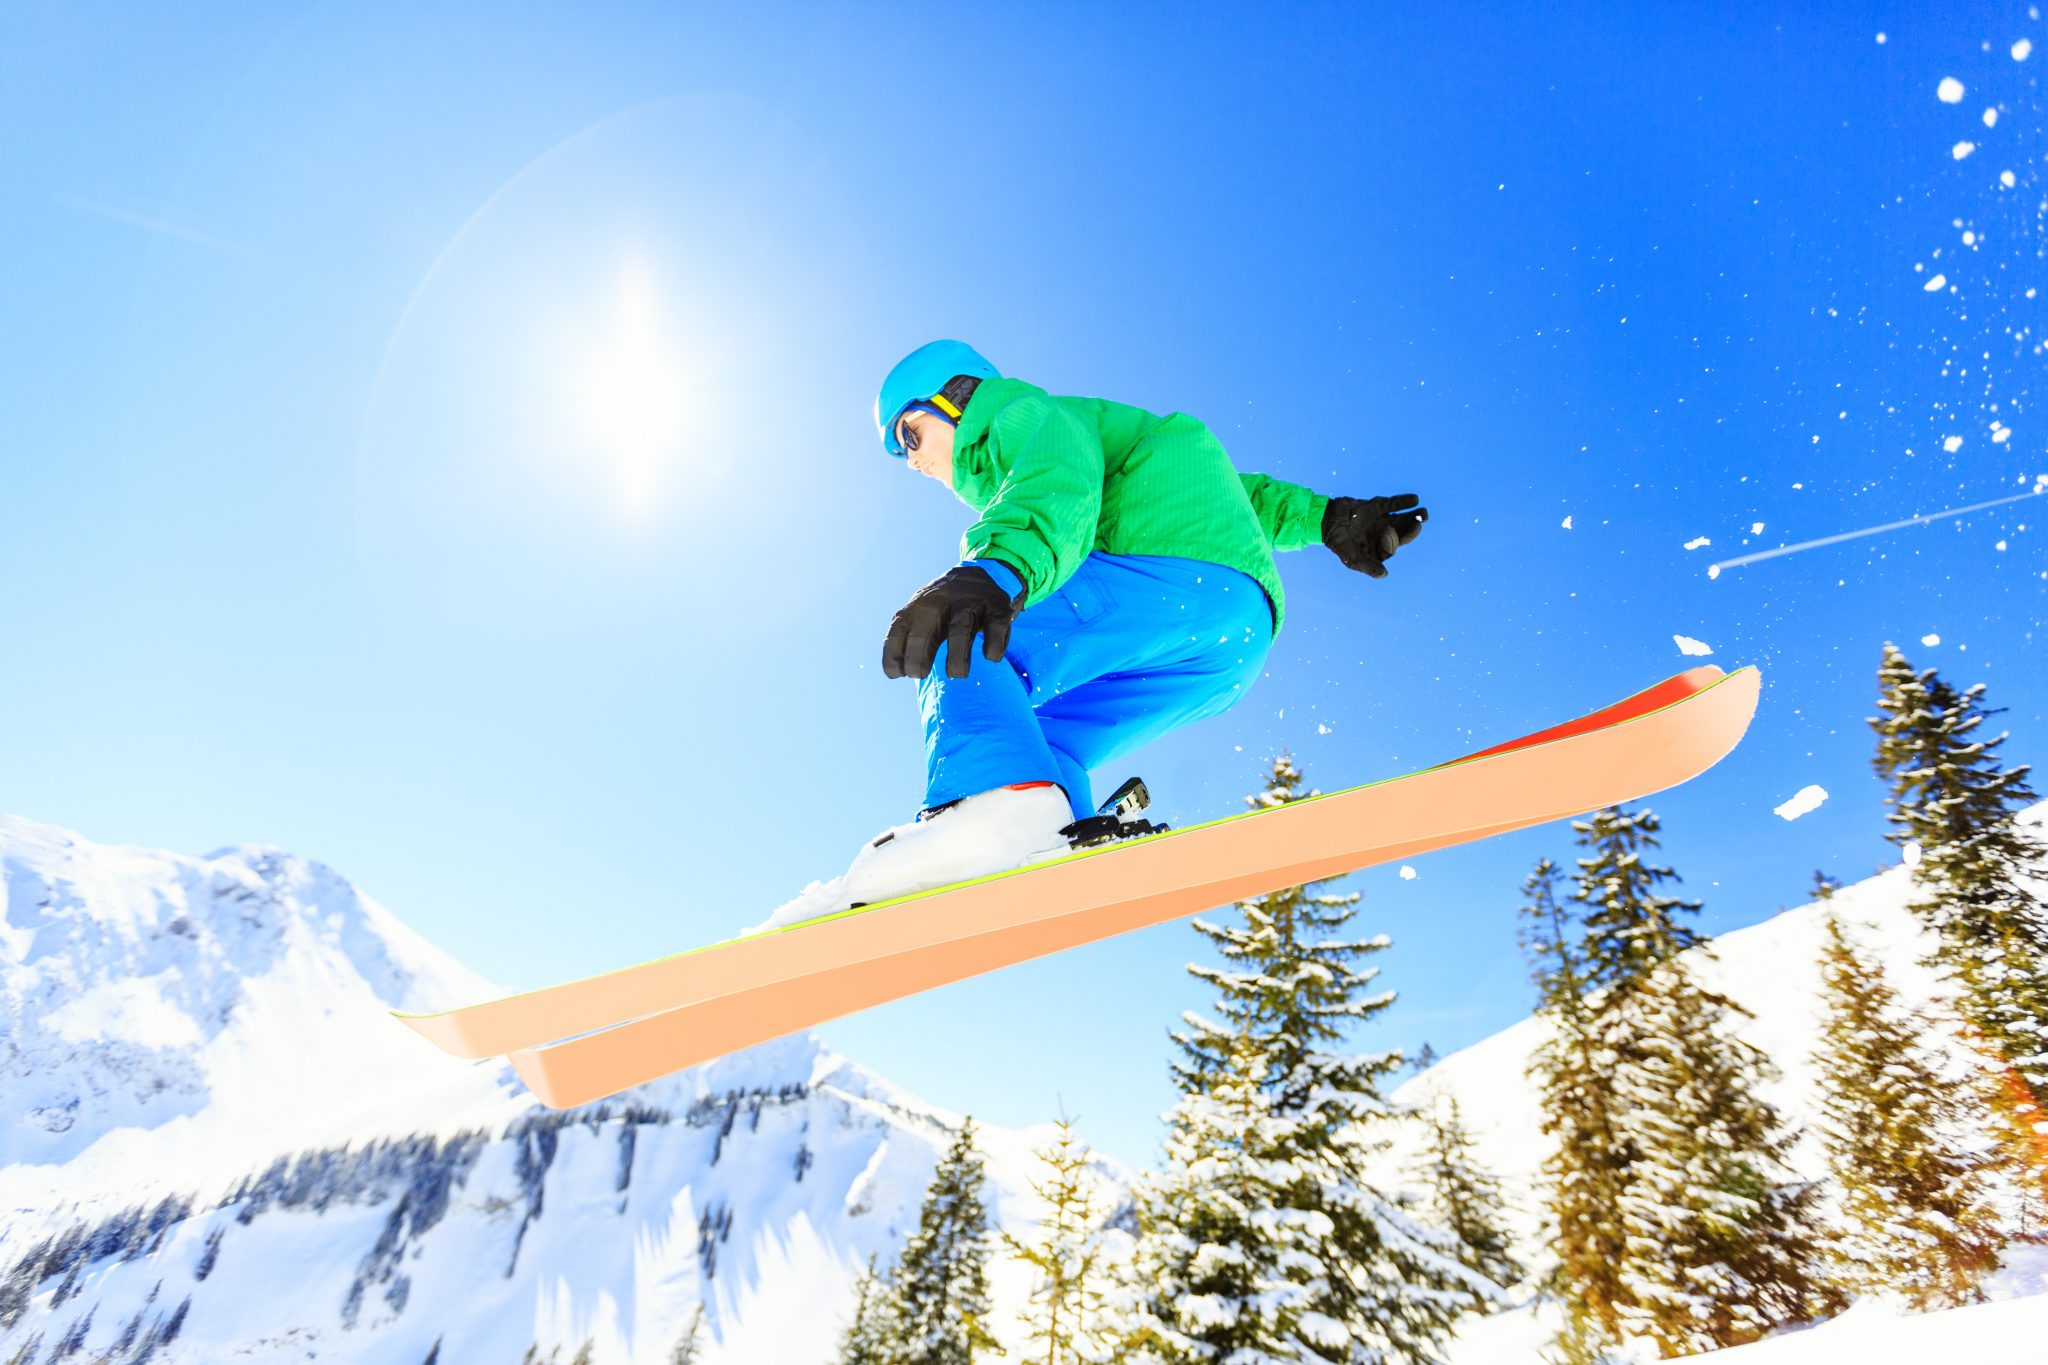 The Best Knee Braces For Skiing To Keep You On The Slopes